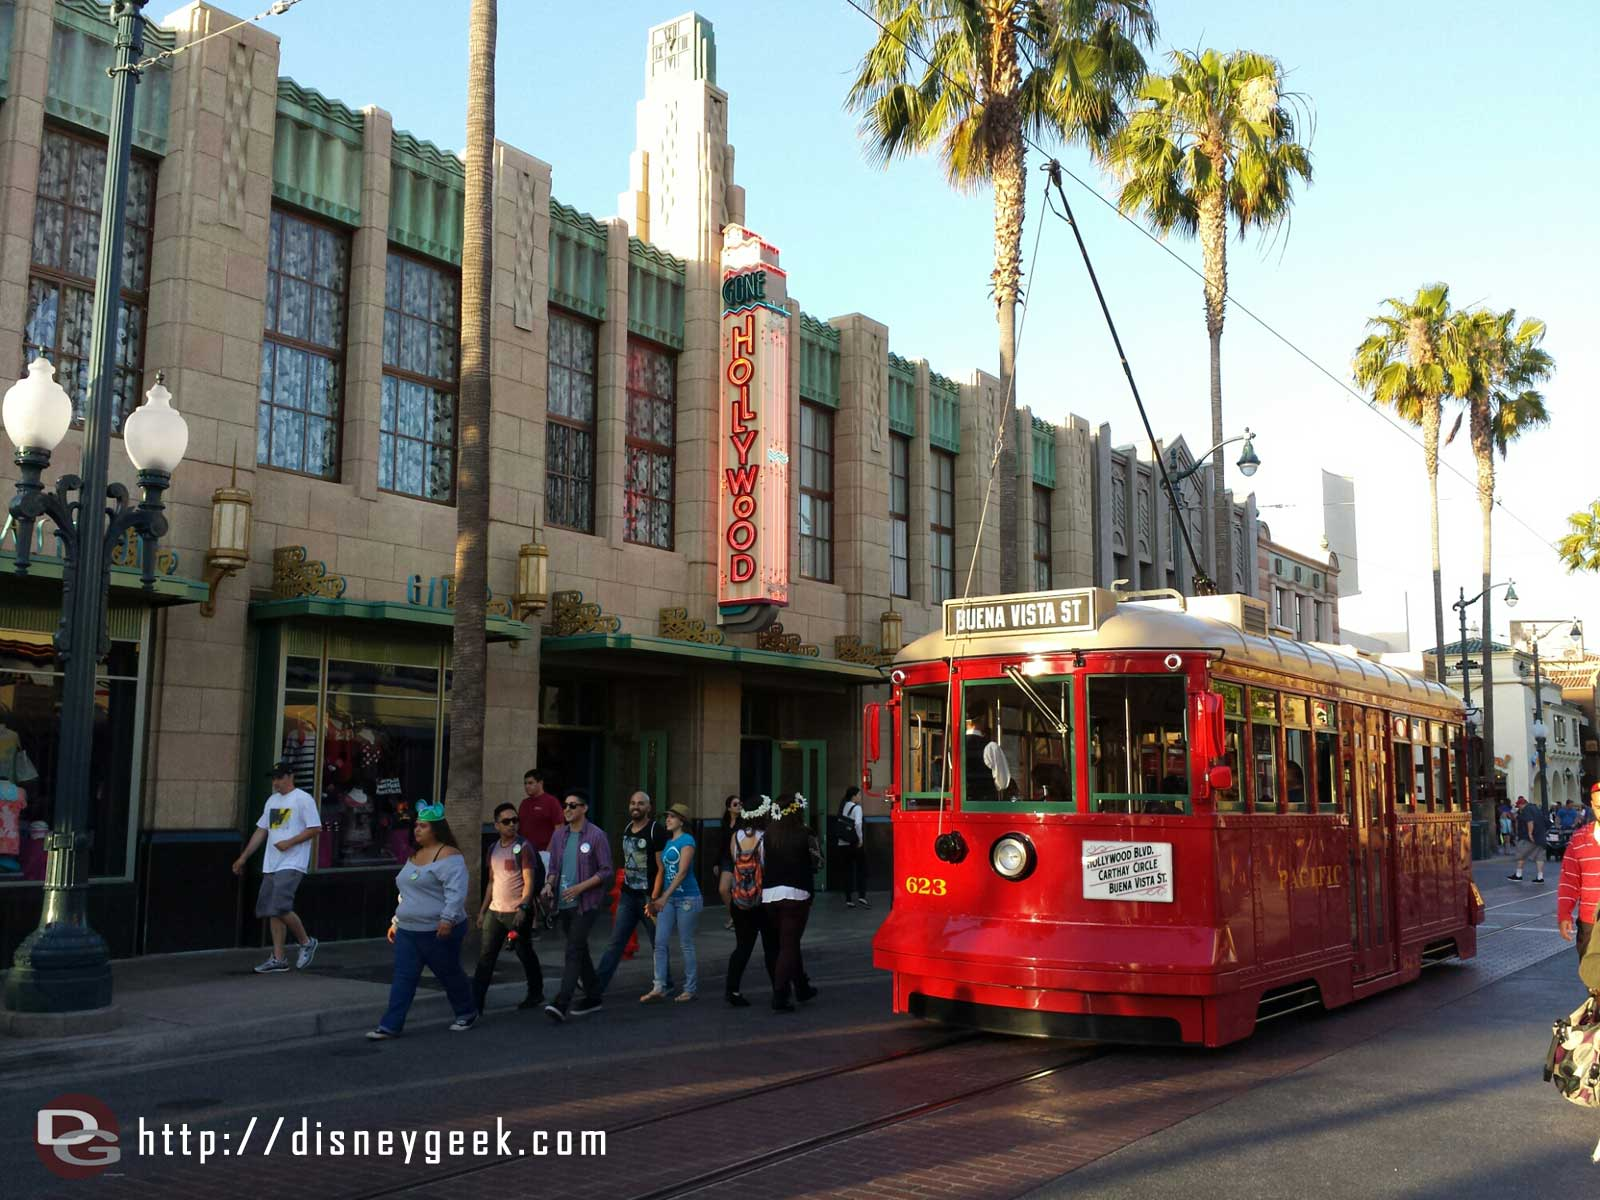 Red Car Trolley 623 passing by on Hollywood Blvd